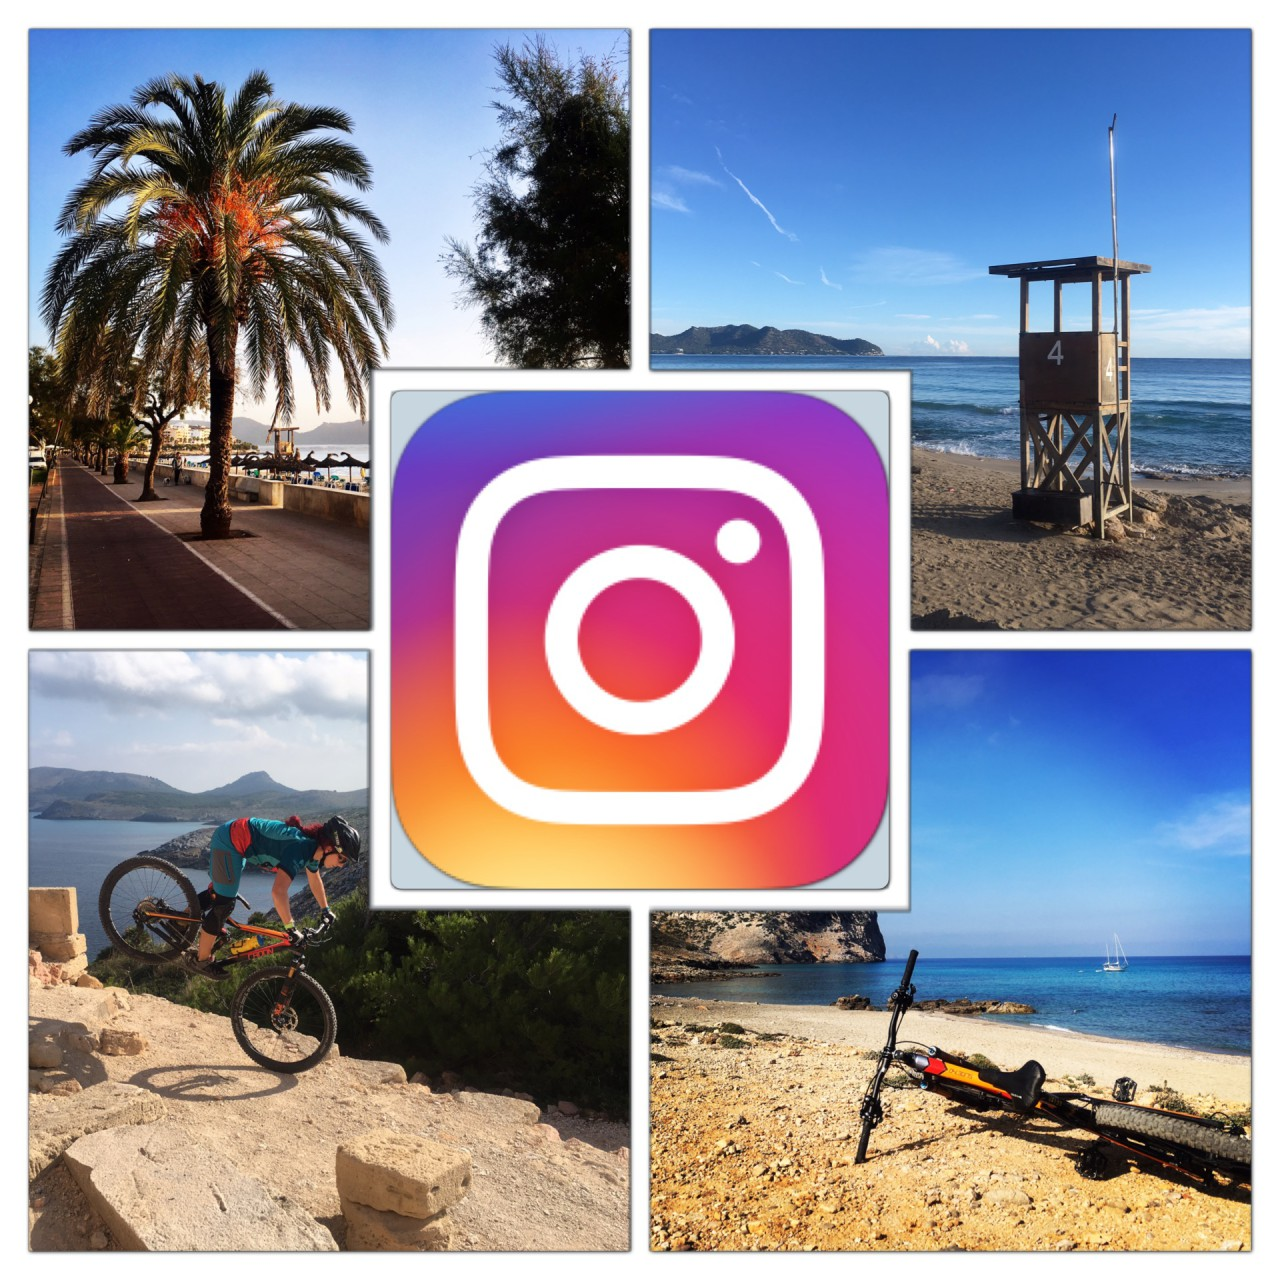 Folge roxybike auf Instagram - follow us on instagram